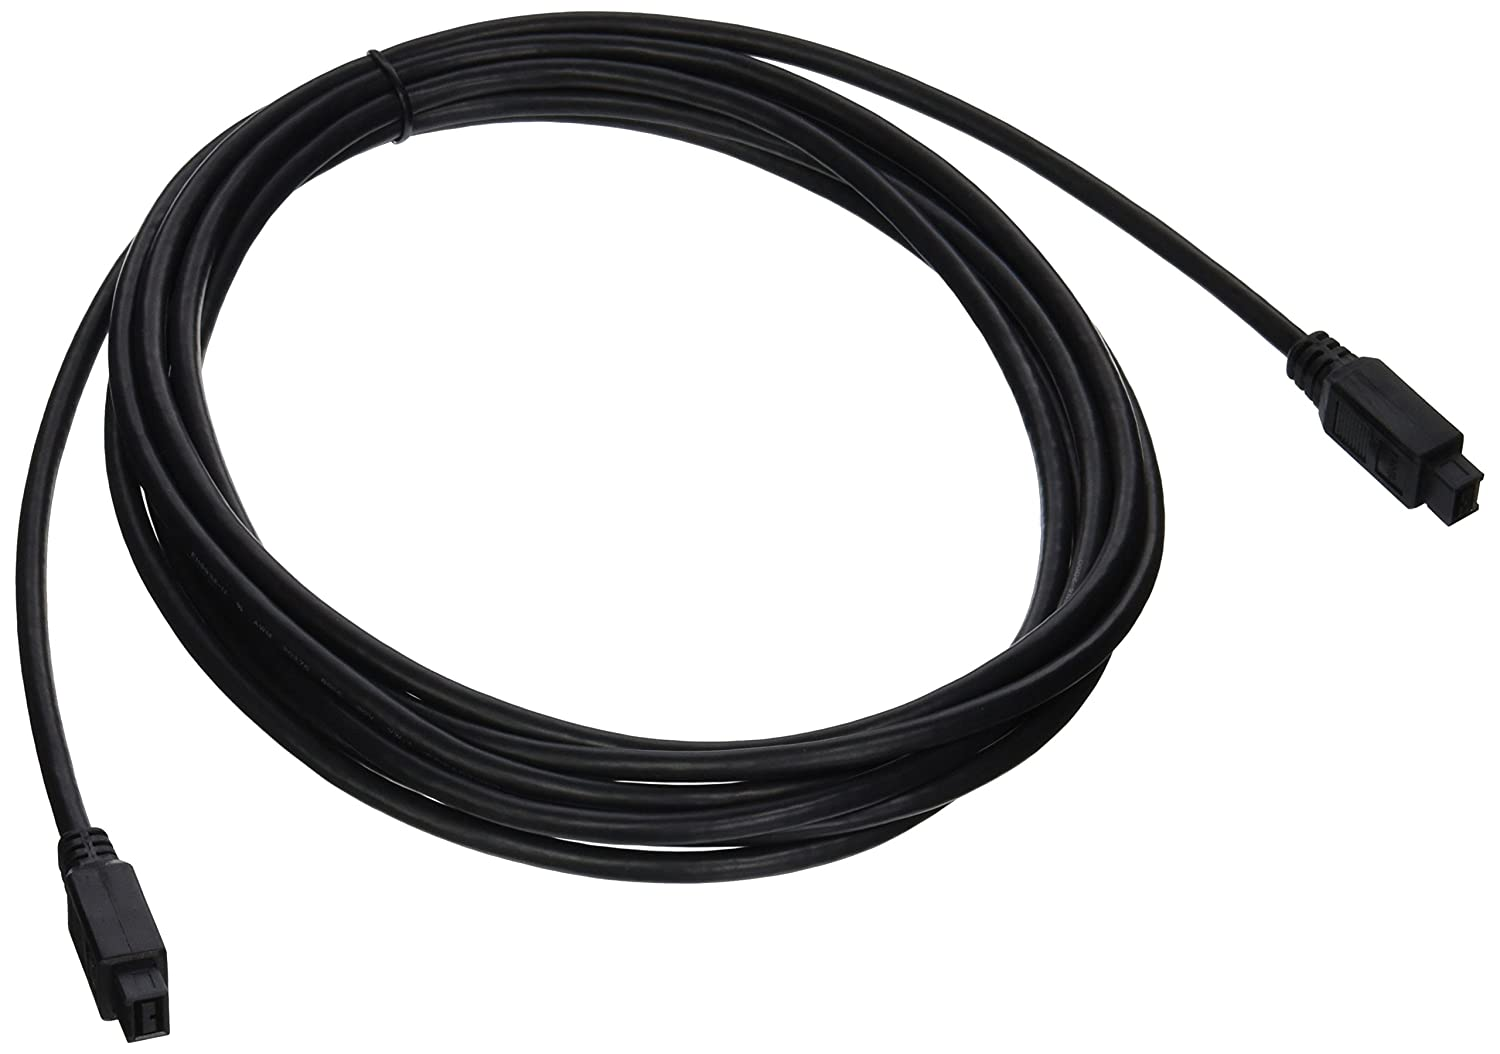 30558 Lindy FireWire 800 Cable 4.5m 9 Pin Beta Male to 9 Pin Beta Male